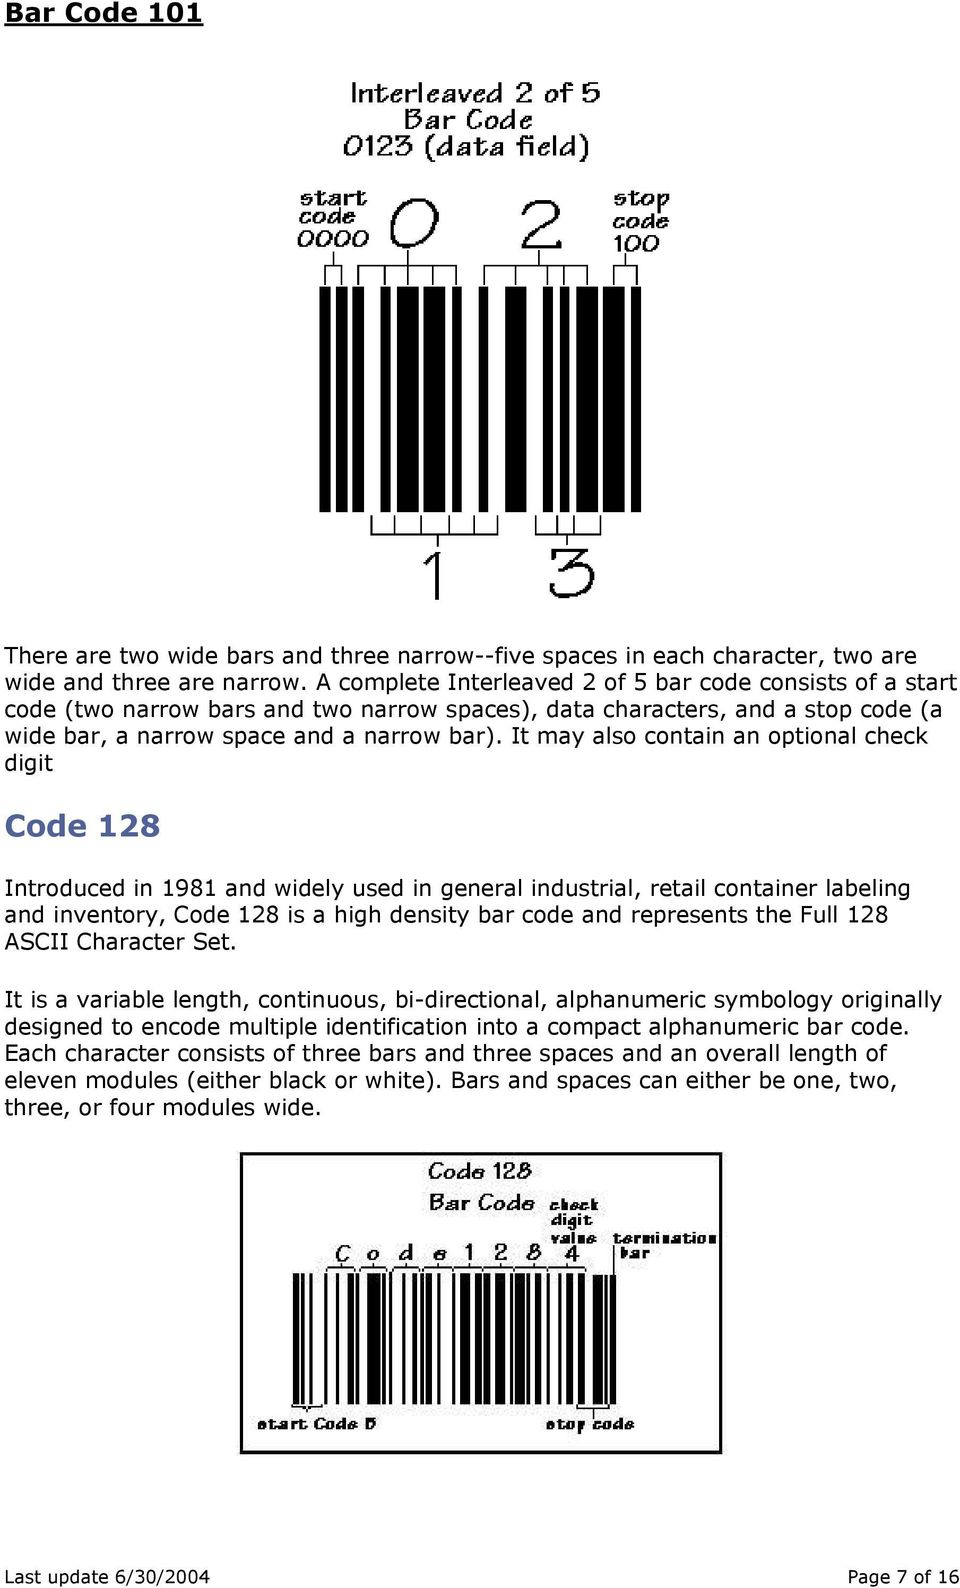 It may also contain an optional check digit Code 128 Introduced in 1981 and widely used in general industrial, retail container labeling and inventory, Code 128 is a high density bar code and